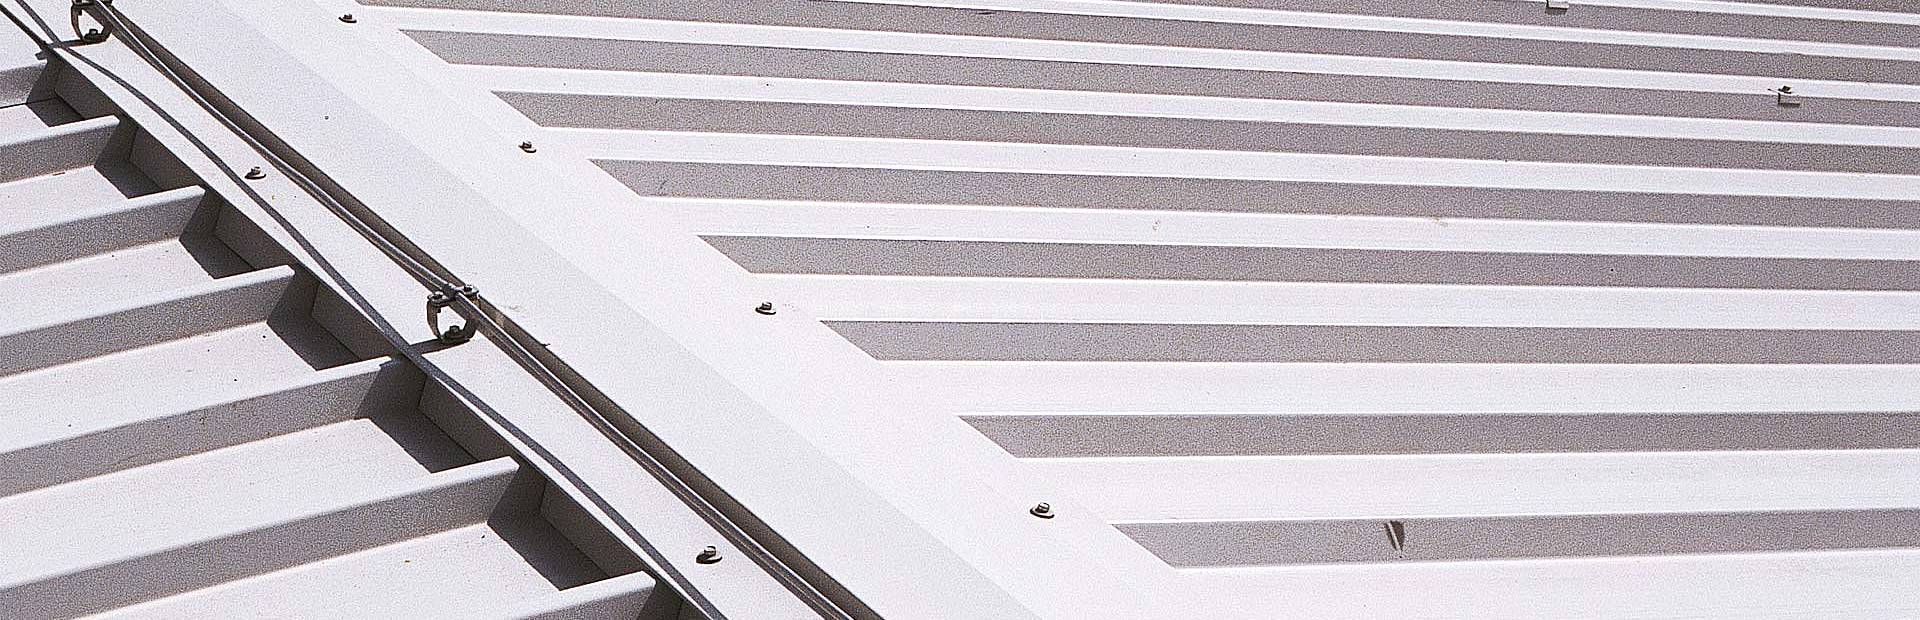 Trimoterm insulated roof panels